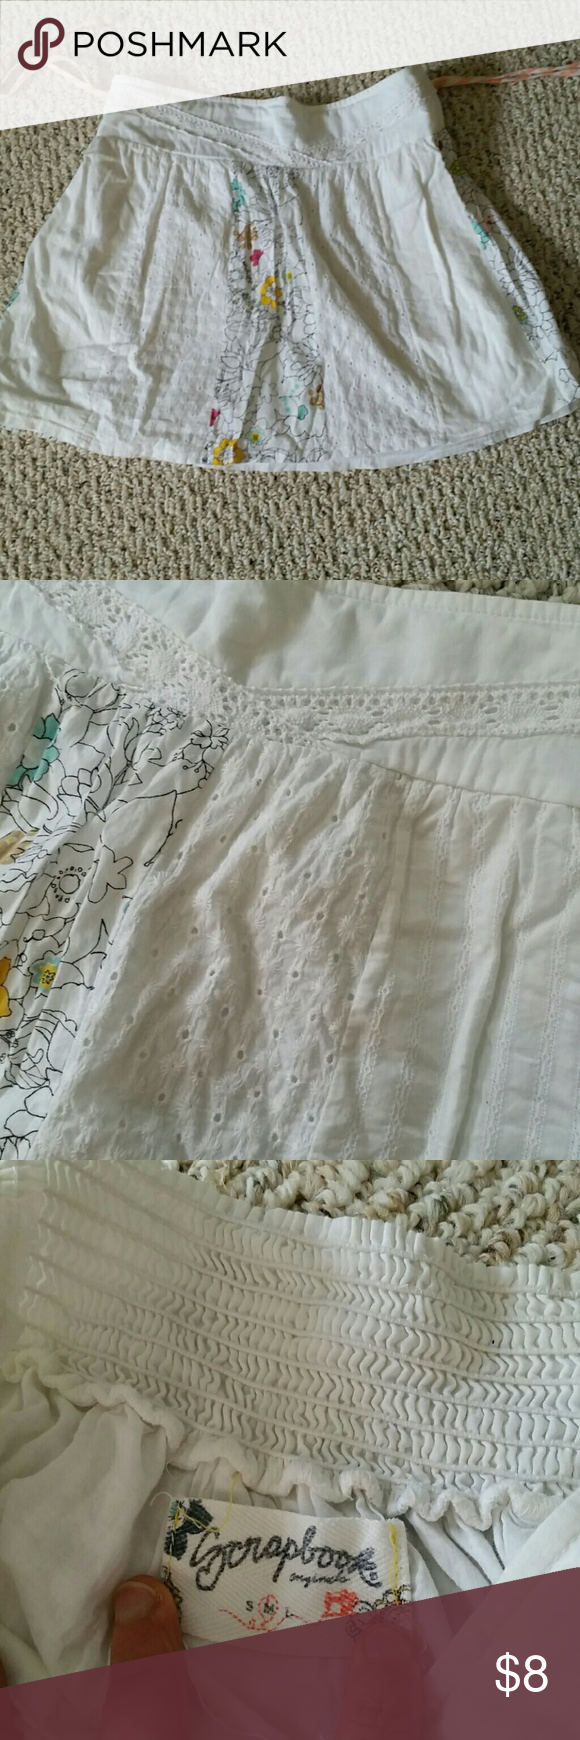 Cute little white skirt Little white skirt with a few different boho ish fabrics, back is wide elastic on top, side has tassles, floral fabric on front and sides as well scrapbook Skirts Mini